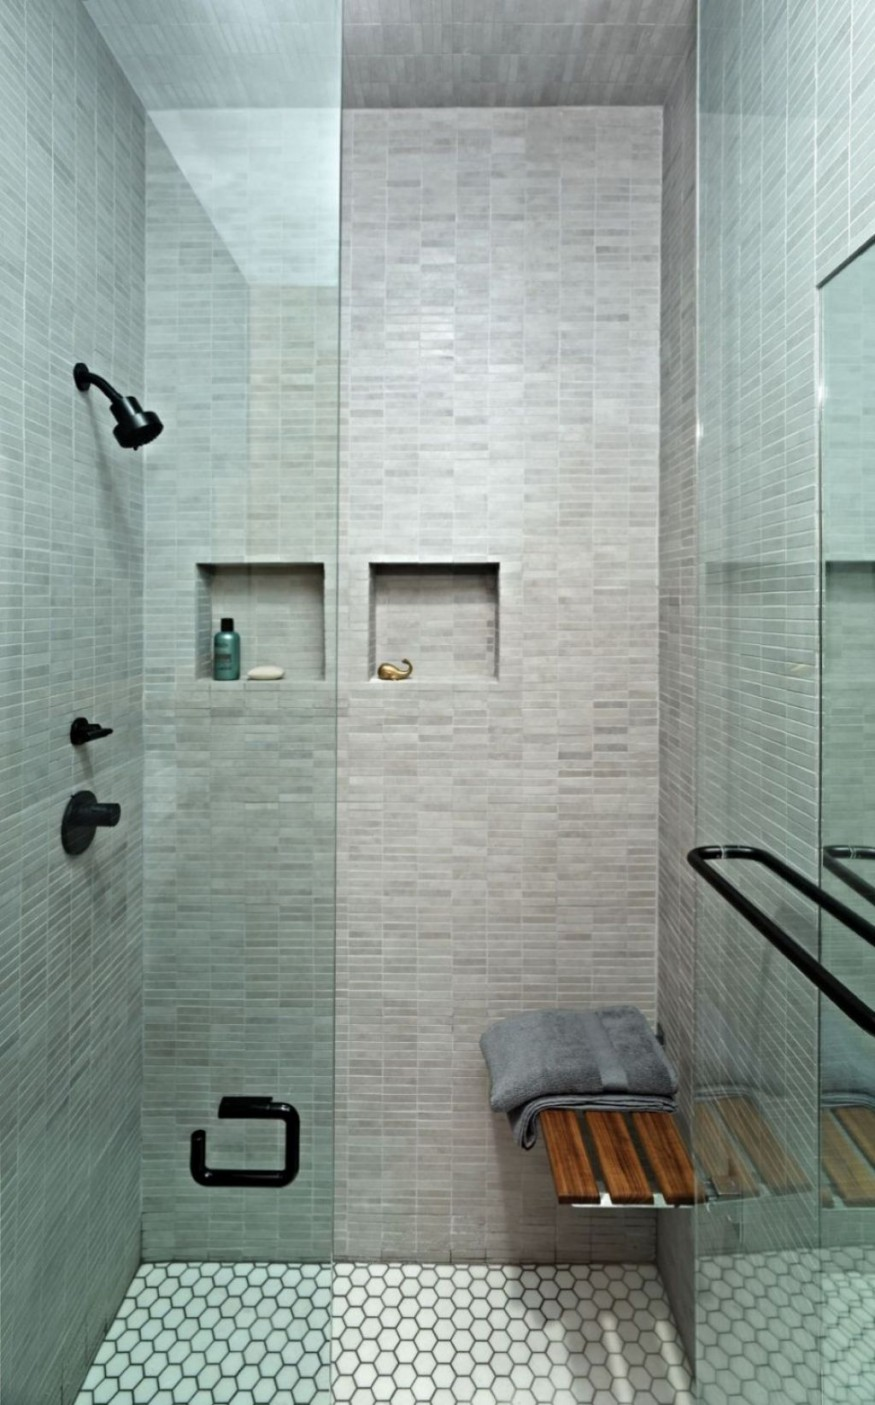 30 good ideas how to use ceramic tile for shower walls Shower Booth Design on vintage booth designs, wedding booth designs, restaurant booth designs, water booth designs, phone booth designs, school booth designs,